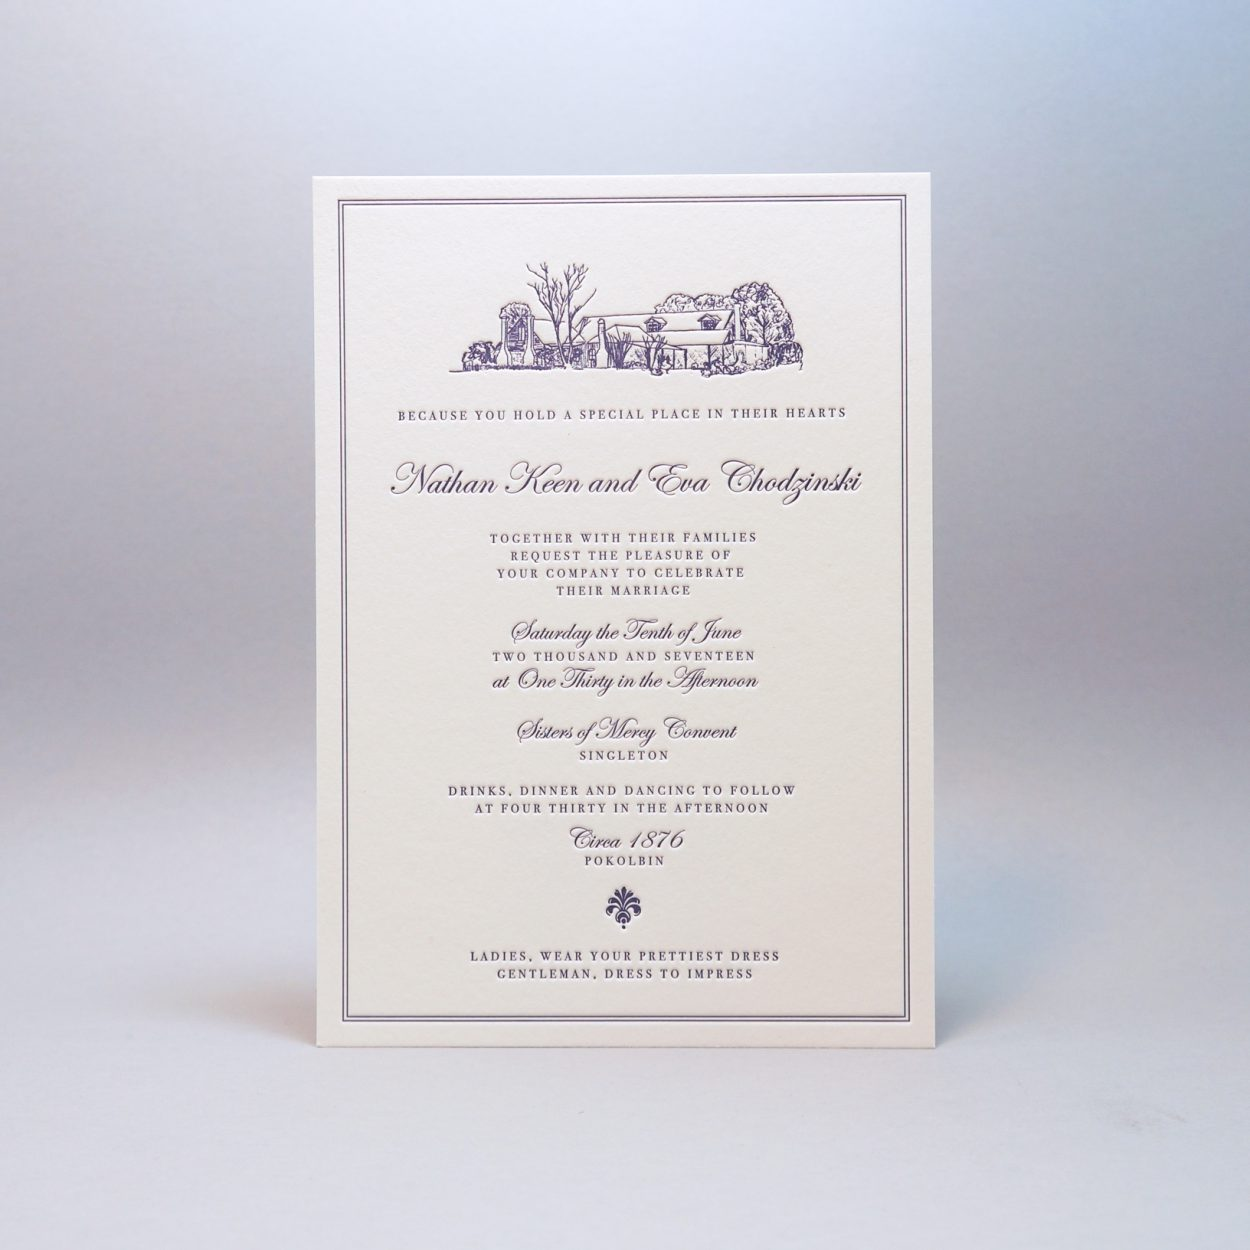 Letterpress-wedding-invitations-purple-crane-lettra-illustration